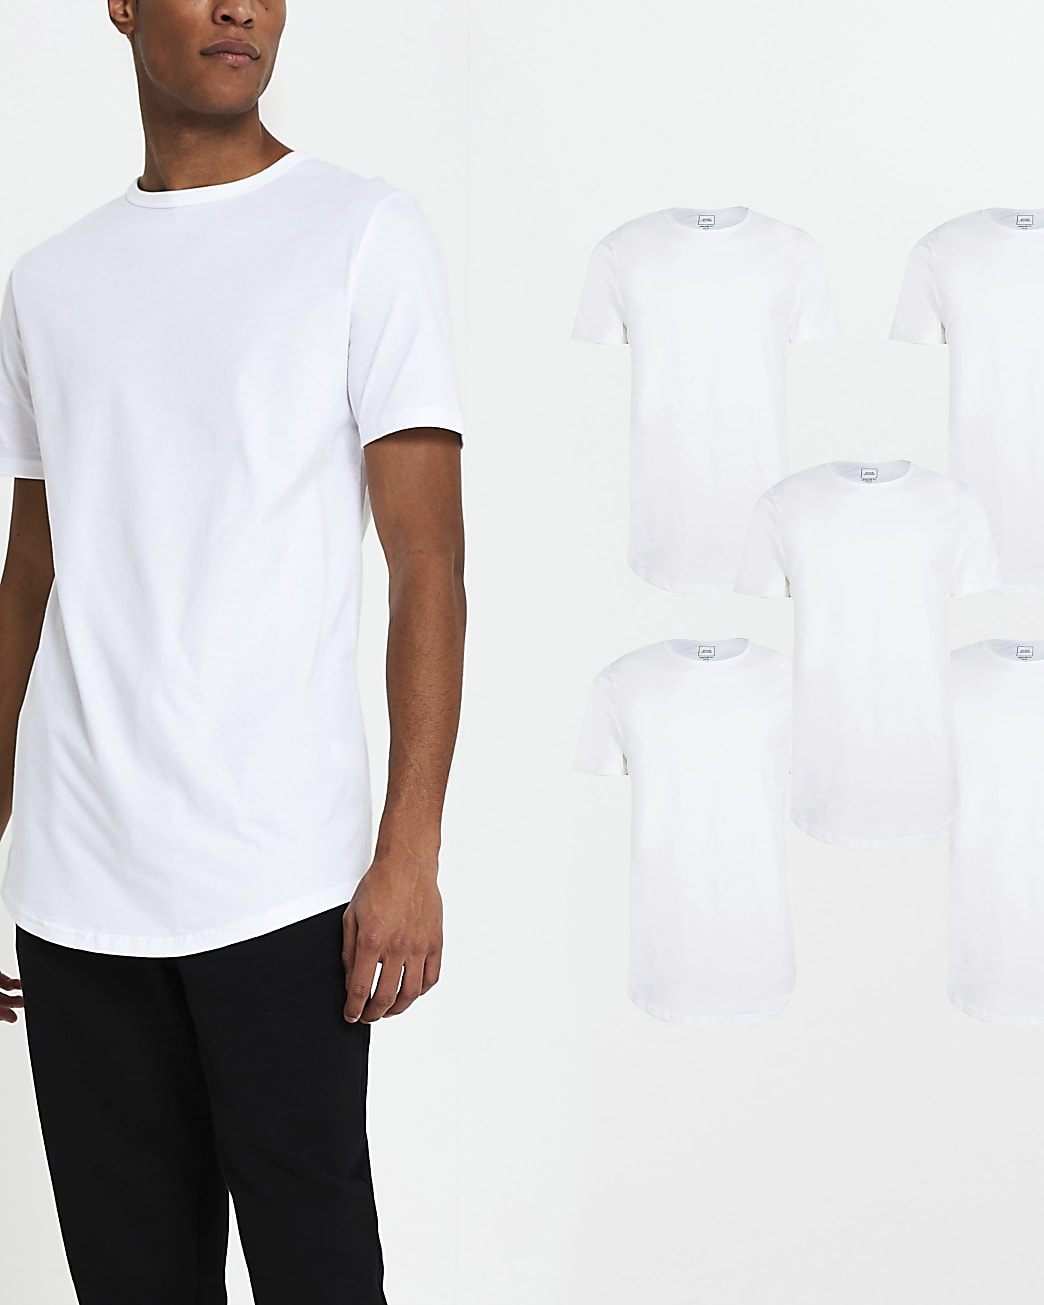 White regular fit t-shirts 5 pack